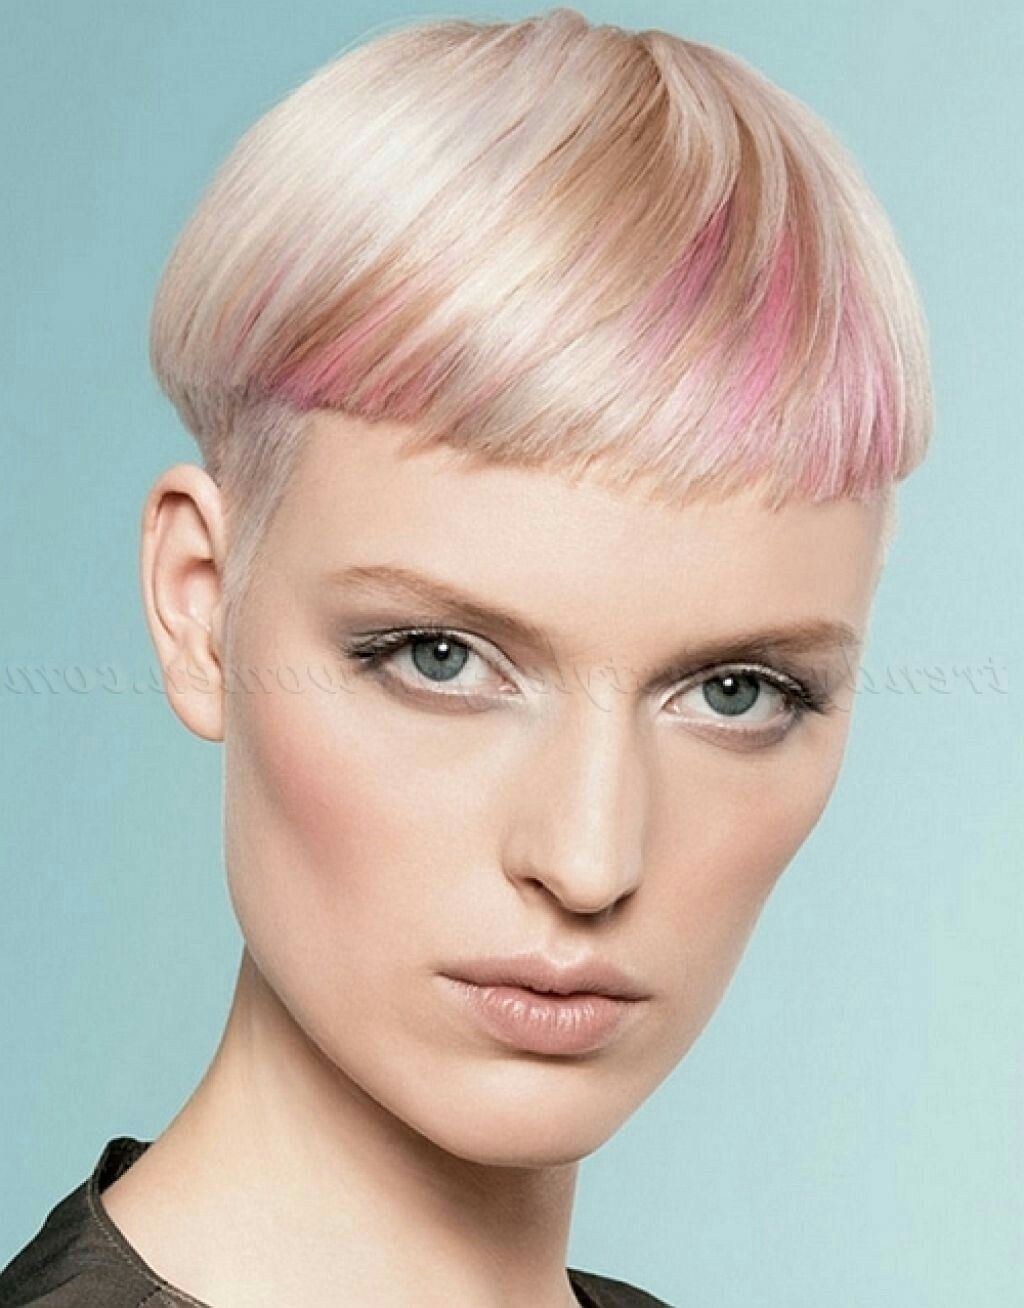 Undercut Hairstyle Haircut For Women Ladies Hairstyle Tips